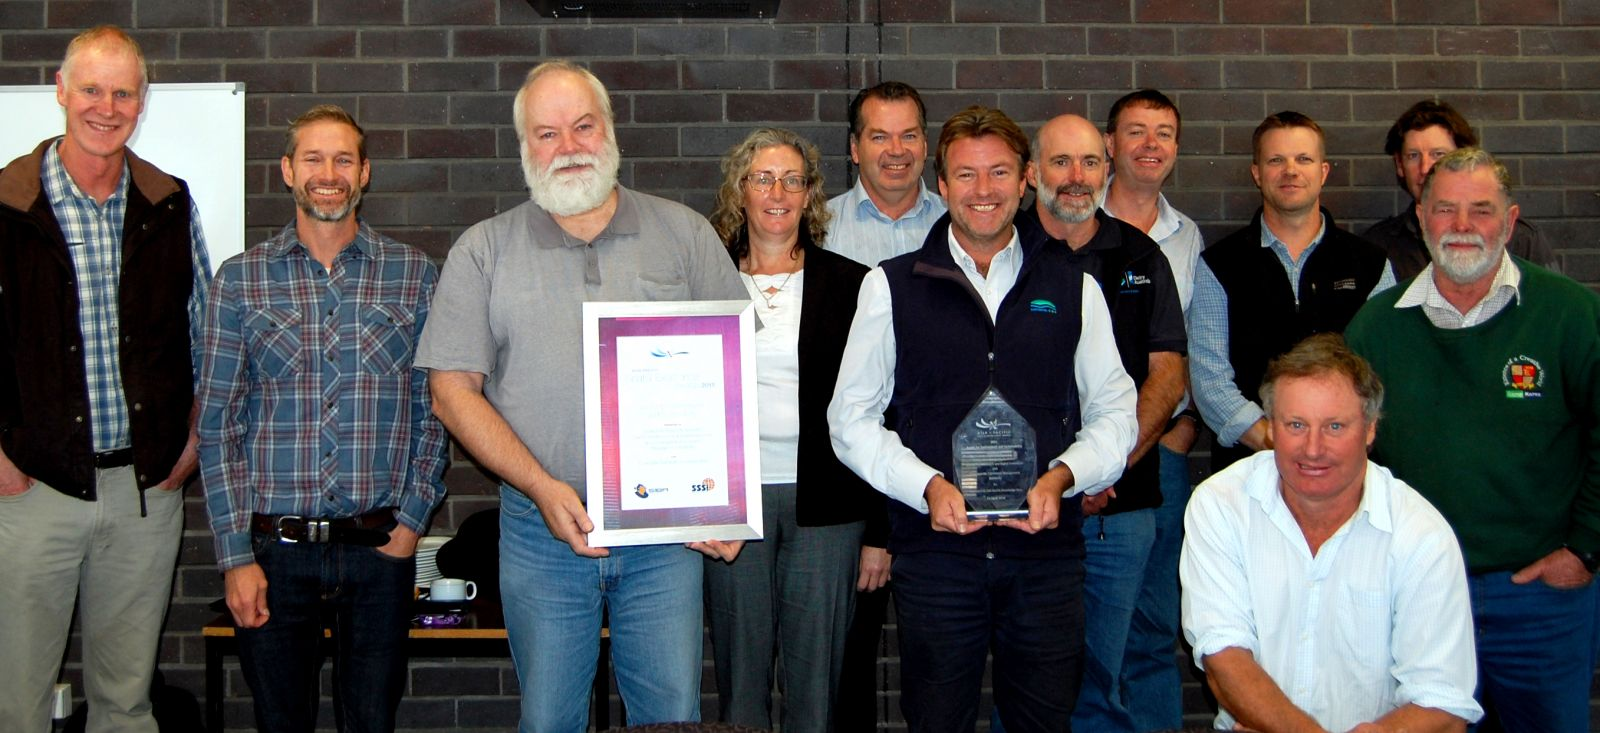 Sharing in the award success is the Corangamite Soil Health Group together with CeRDI's Peter Dahlhaus and Thompson.